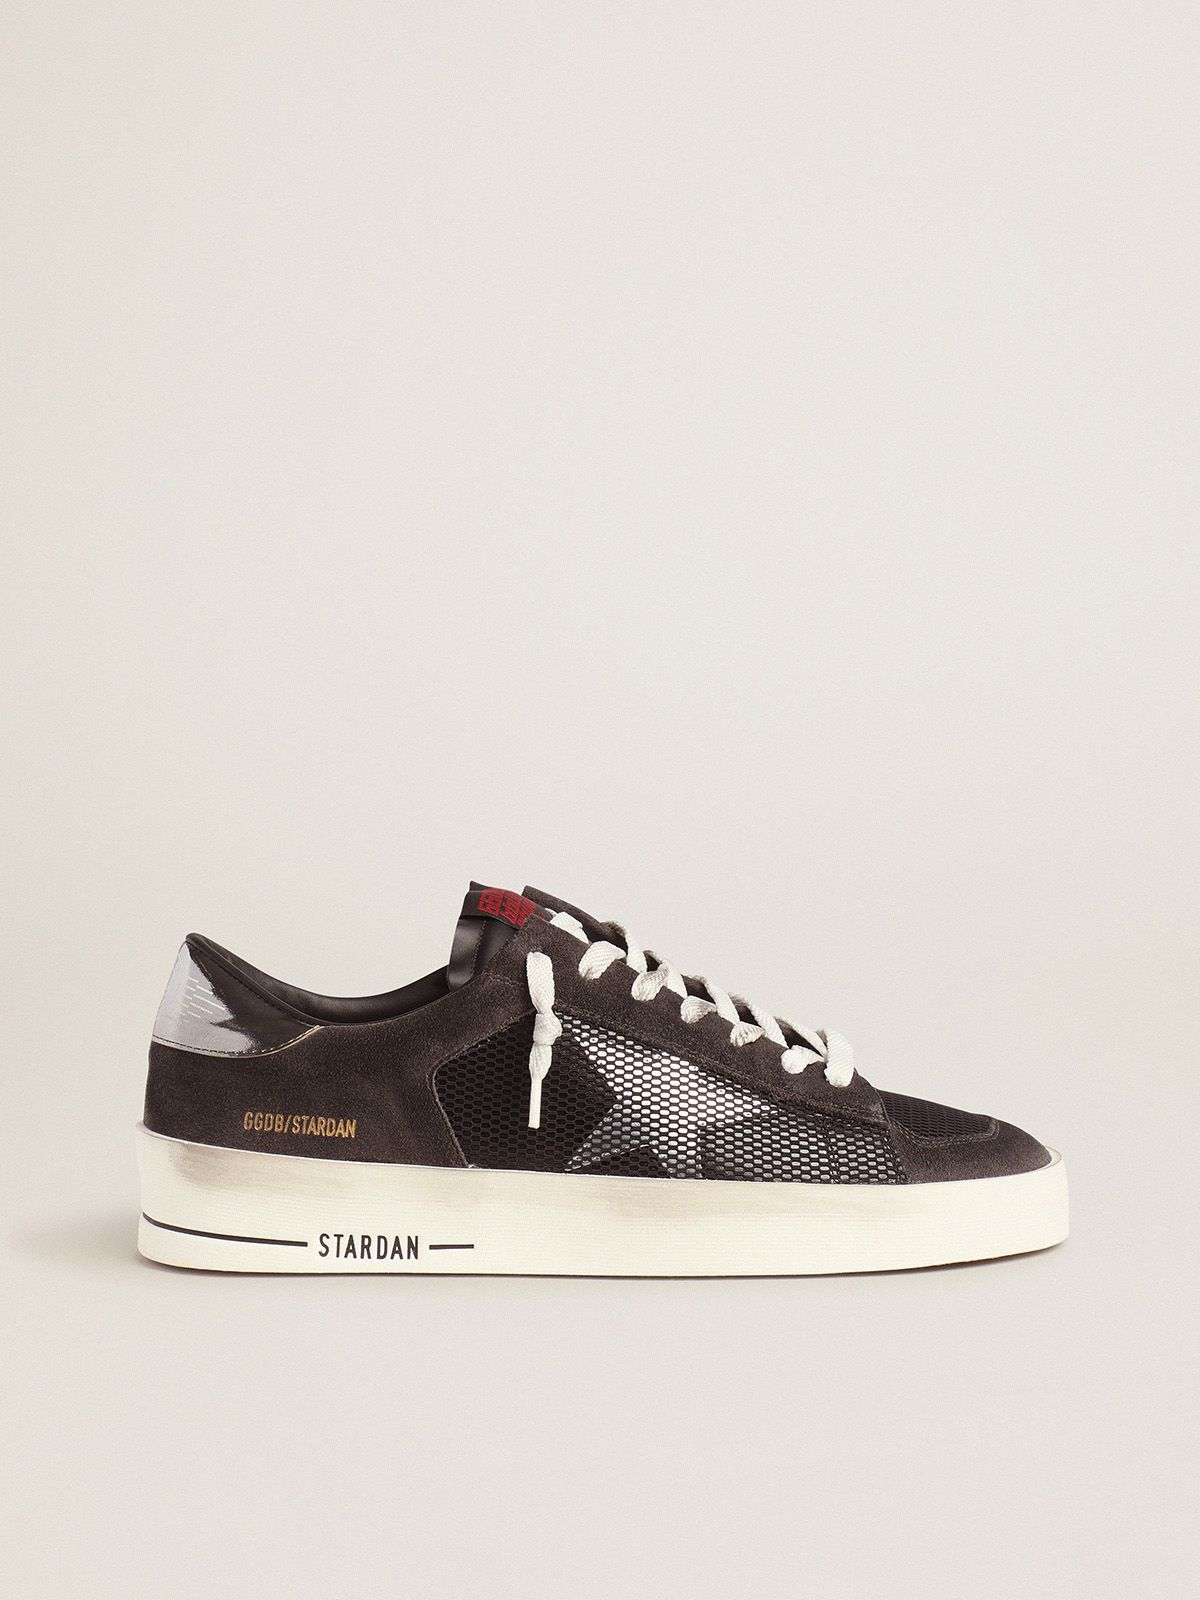 Black Stardan sneakers with metallic star